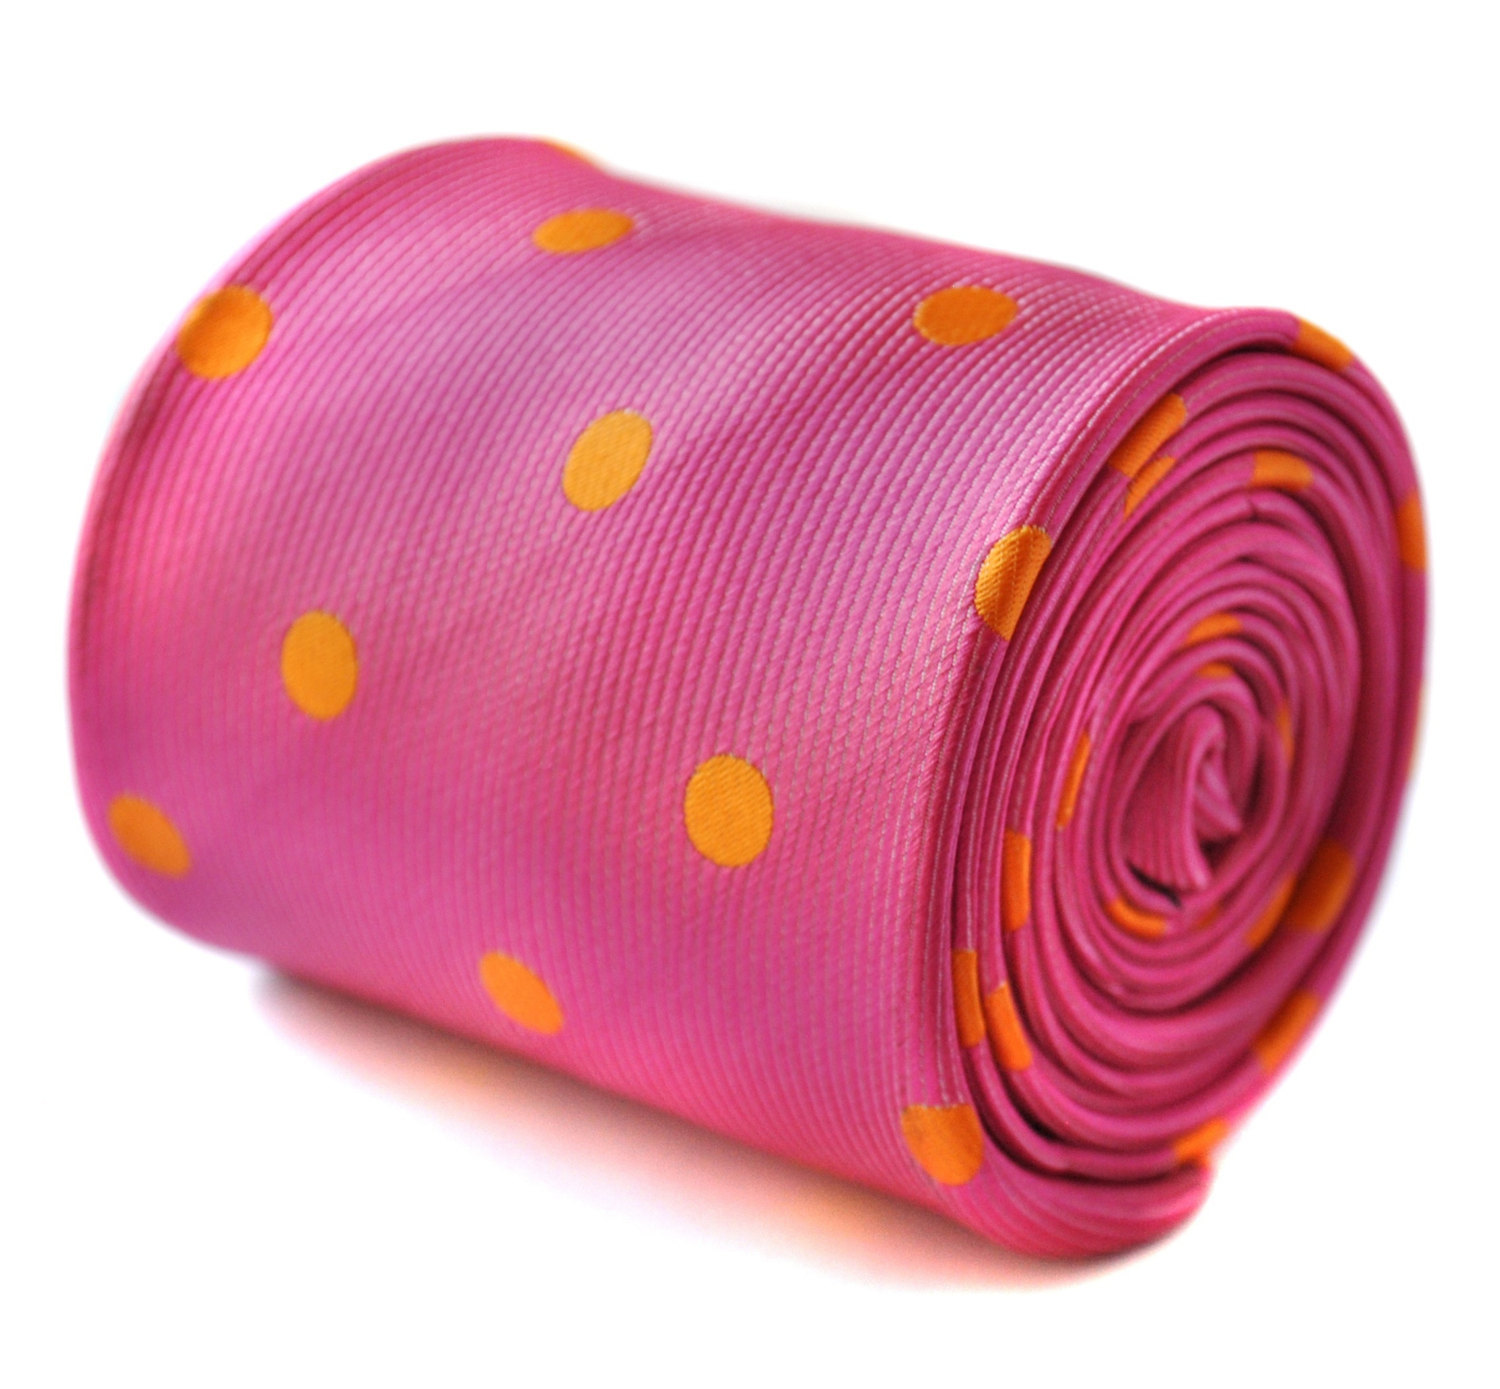 bright pink and orange polka spot tie with signature floral design to the rear b